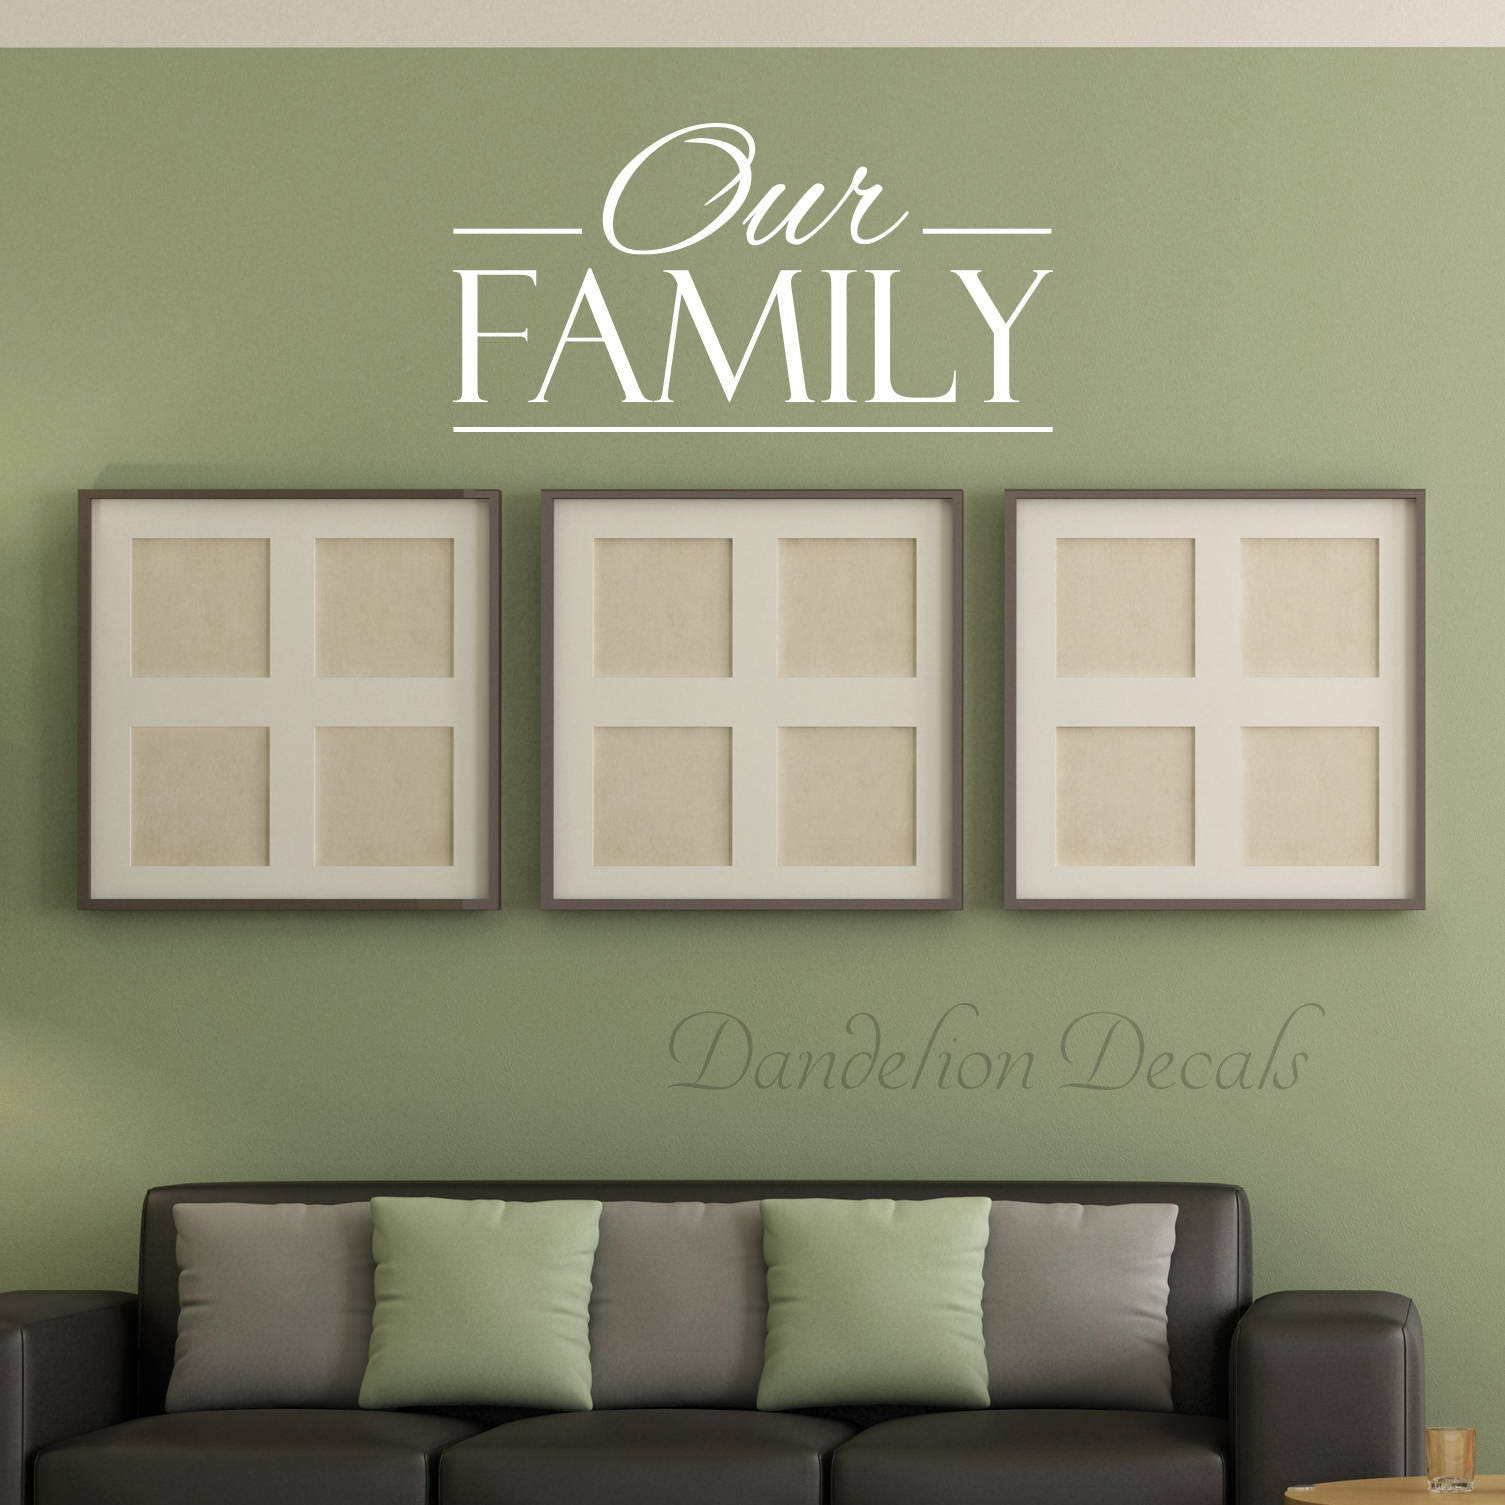 Etsy Family Wall Decor : Living room decor etsy images maydae picks